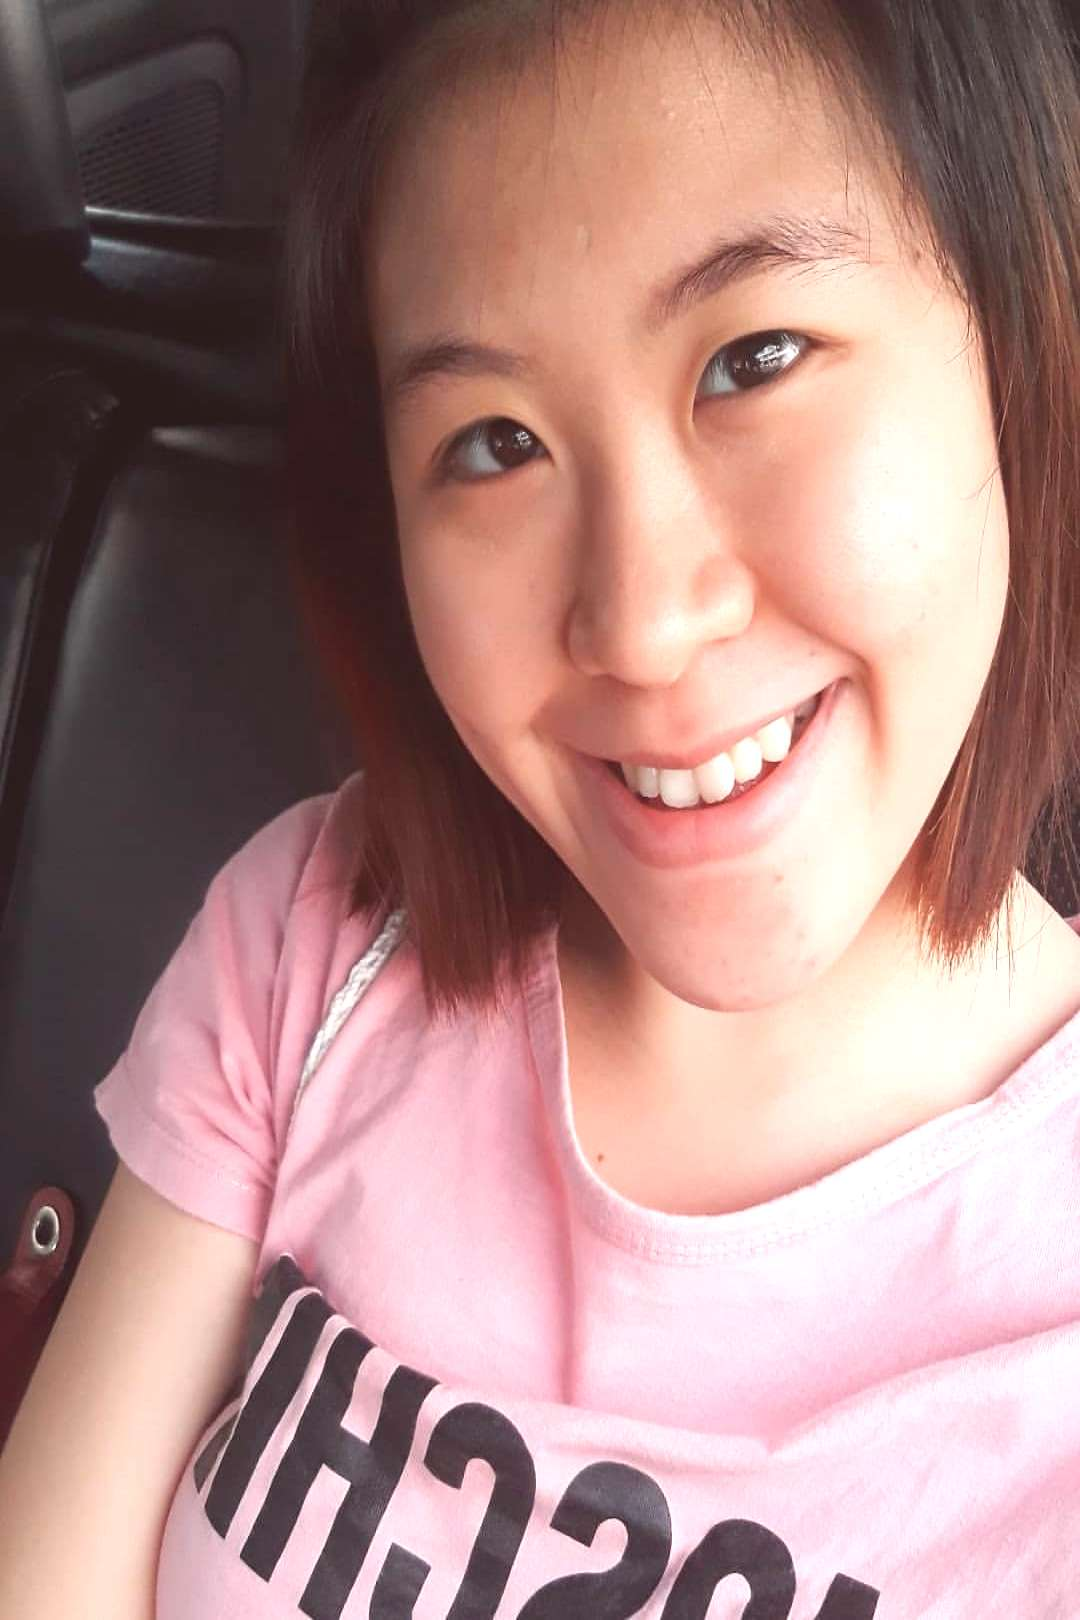 Sheren Sutanto on June 02 2020 1 person selfie and closeup